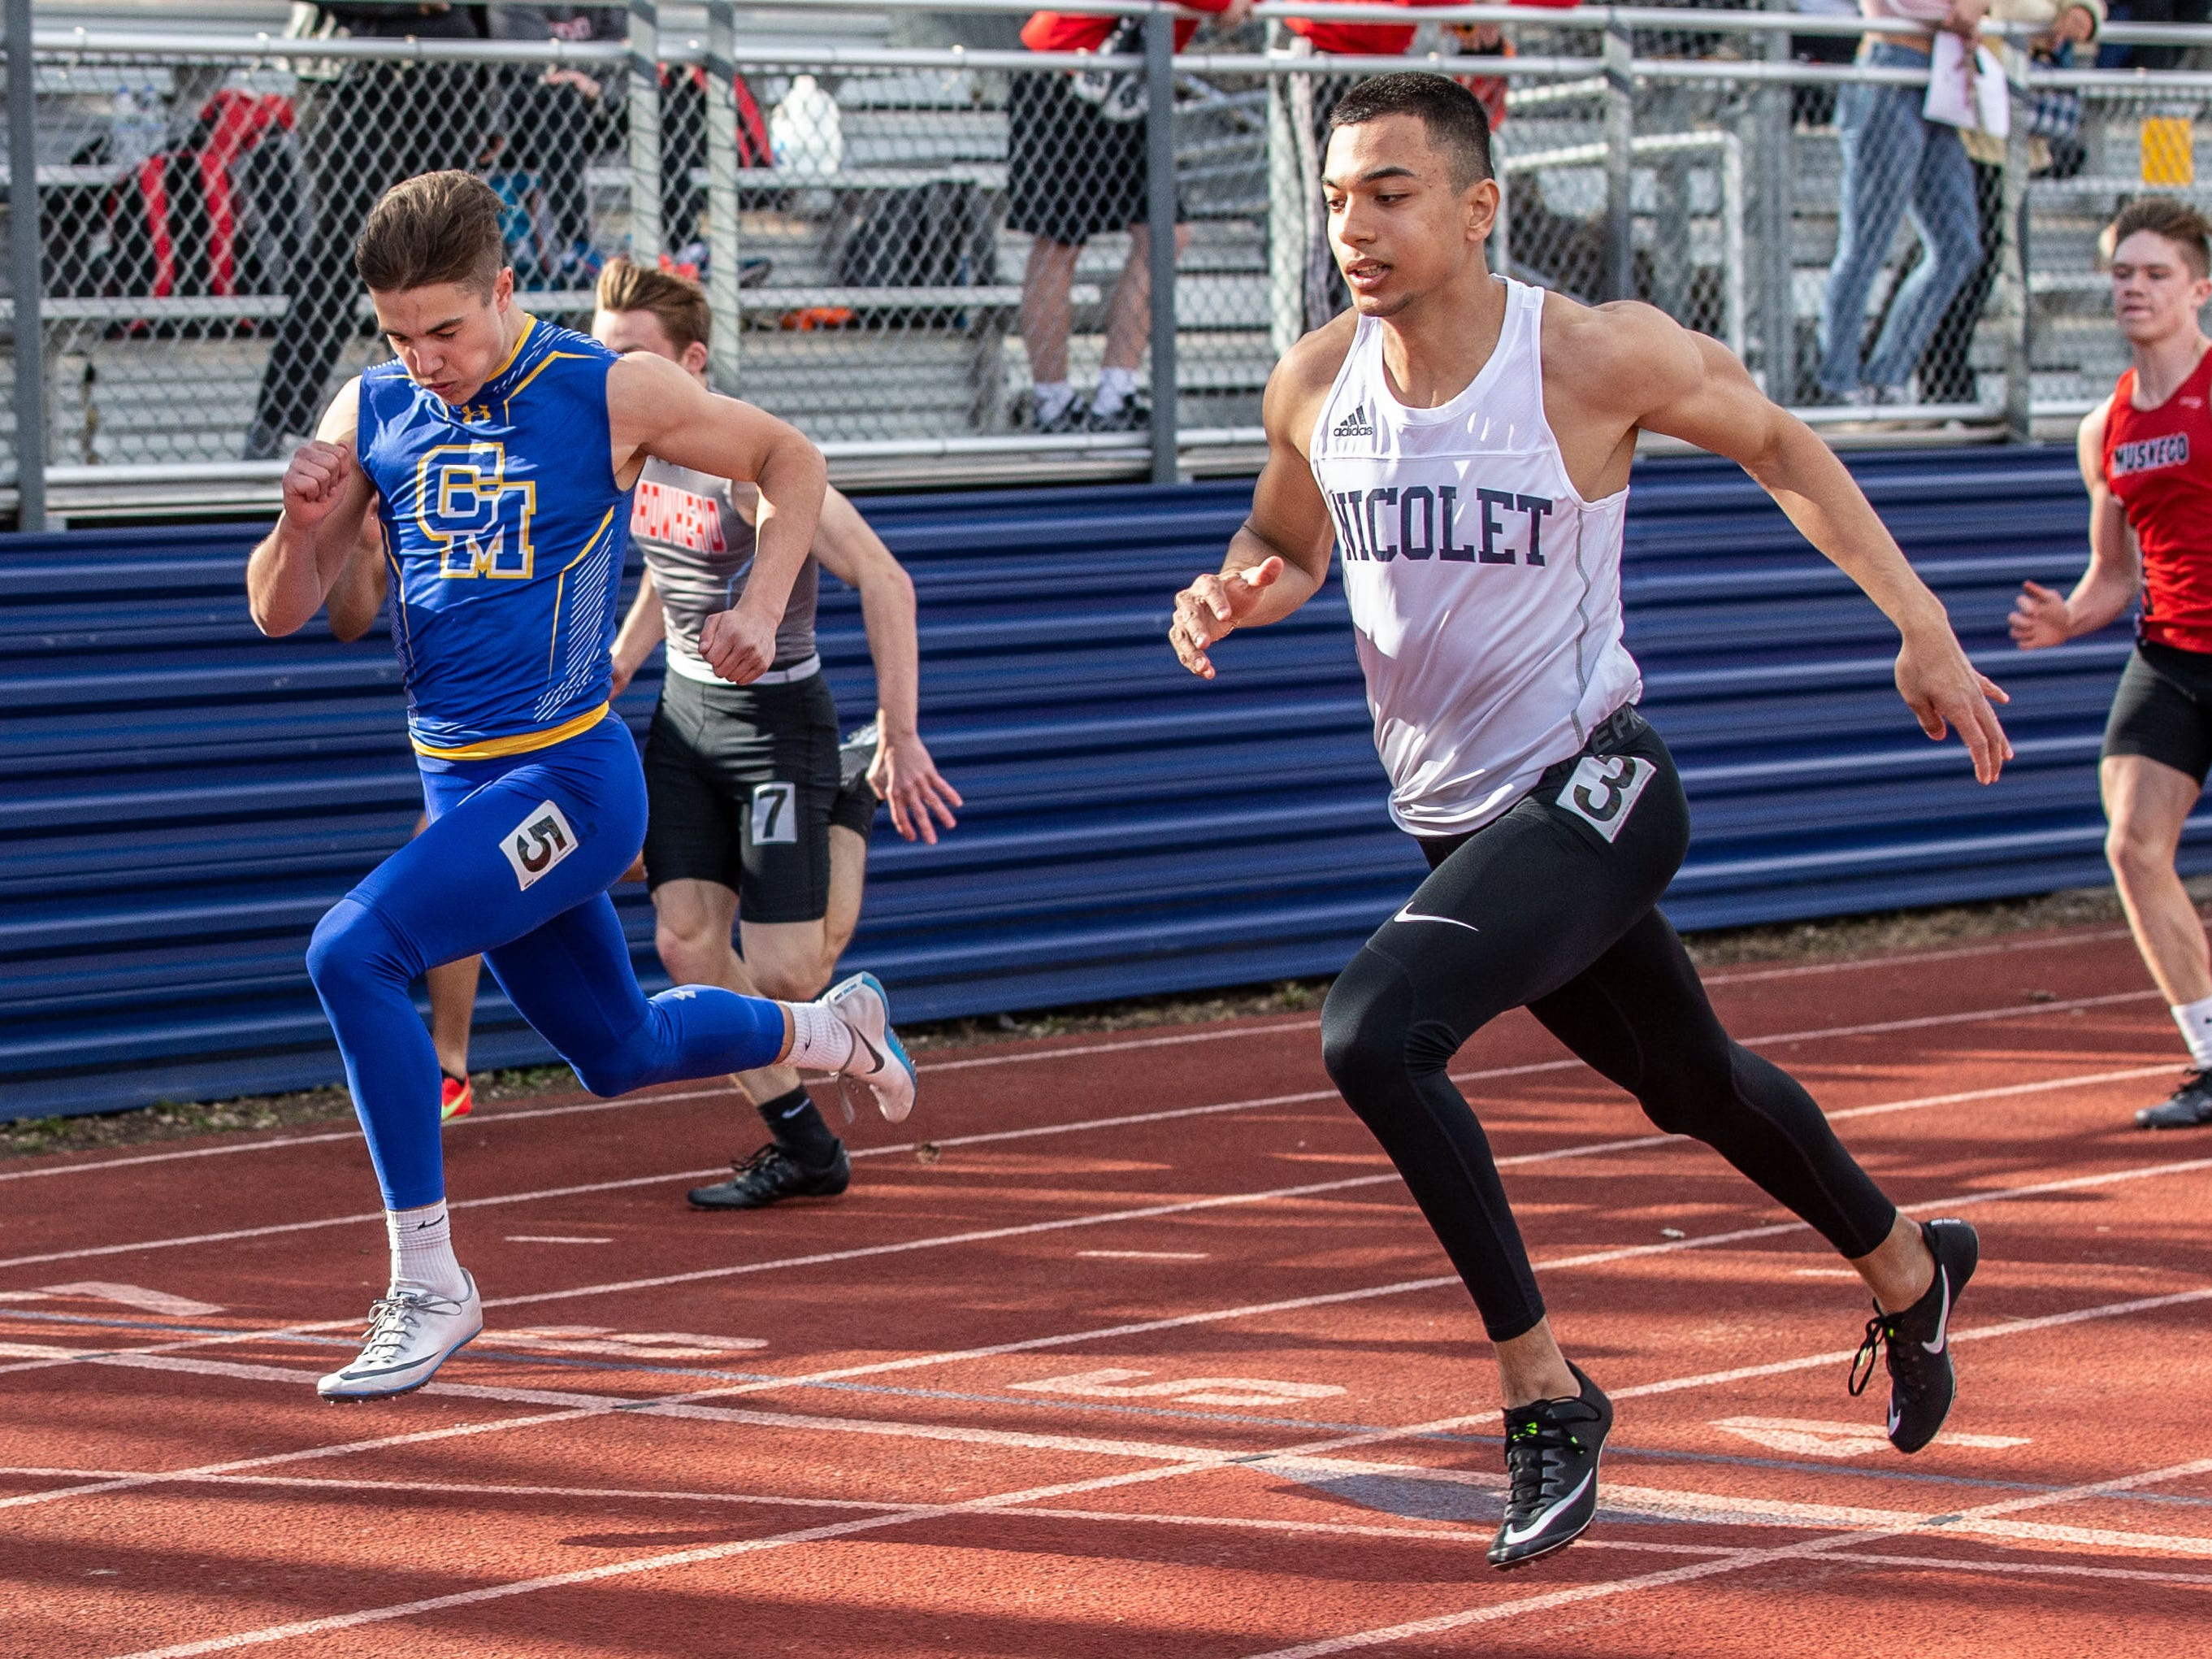 Nicolet's Arslan Jumabayev (3) races Catholic Memorial's Joe Sikma (5) to the finish in the 100 meter dash during the Mike Gain 50th Annual Spartan Invitational at Brookfield East on Tuesday, April 9, 2019. Jumabayev won with a time of 11.17 and Sikma placed second with a time of 11.24.